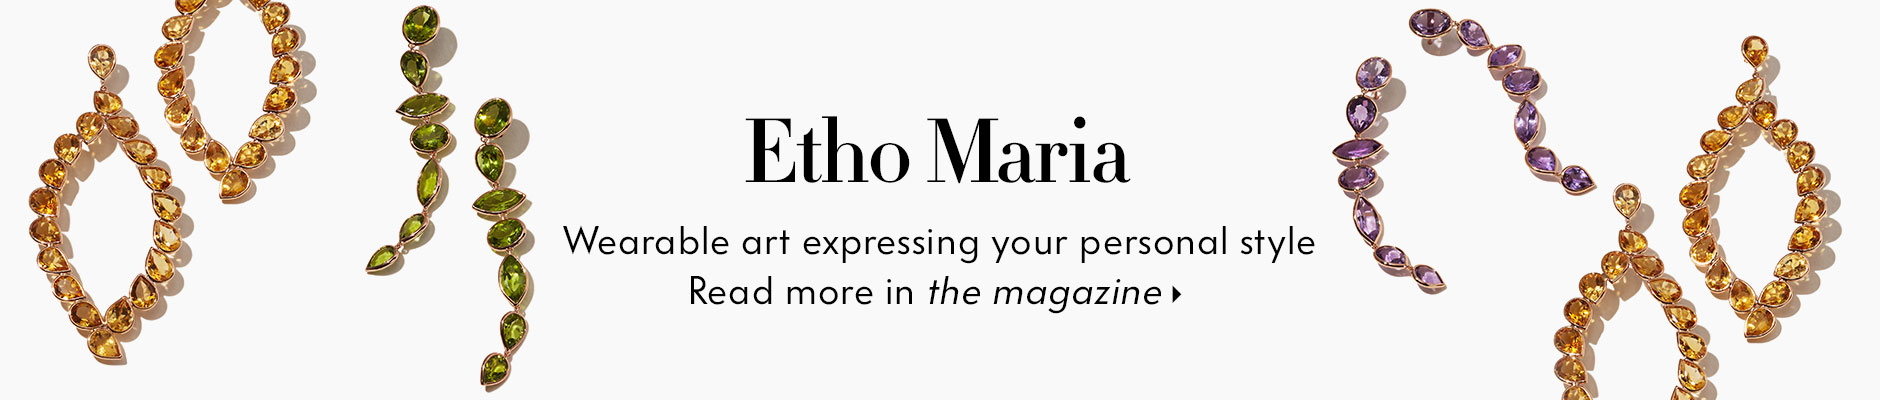 Look Who's Here: Etho Maria